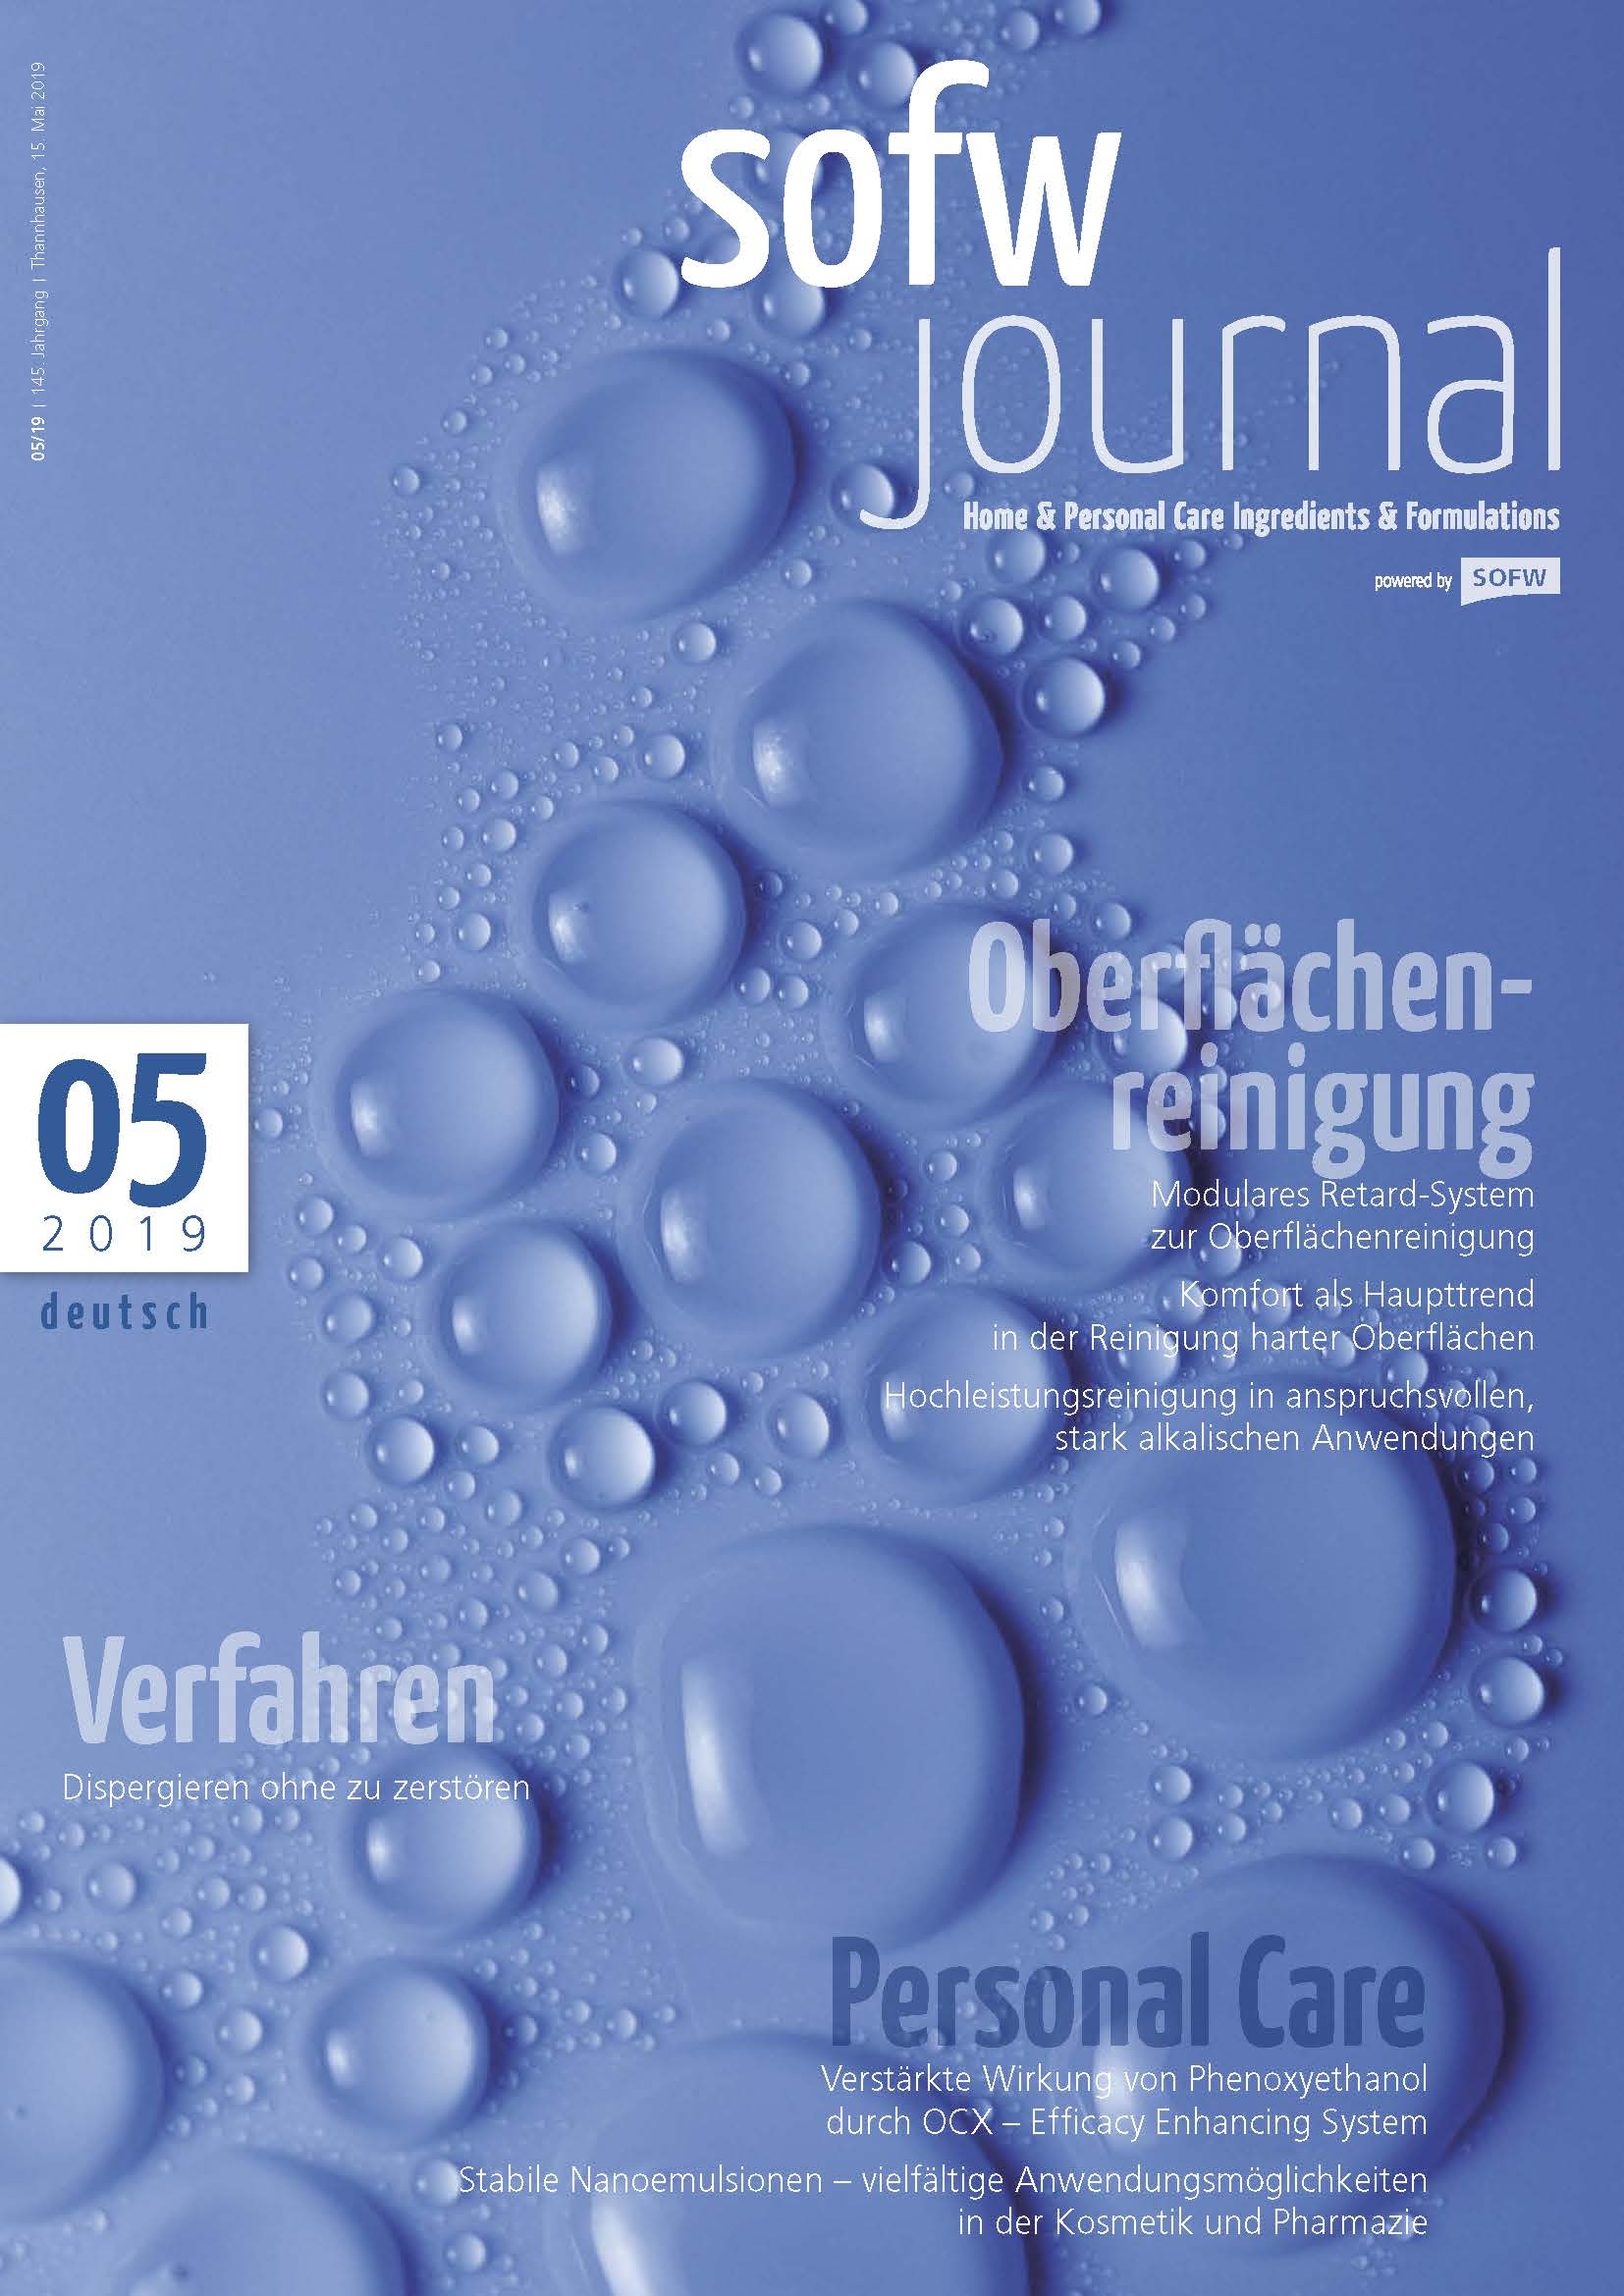 sofwjournal_de_2019_05_cover_2109675034